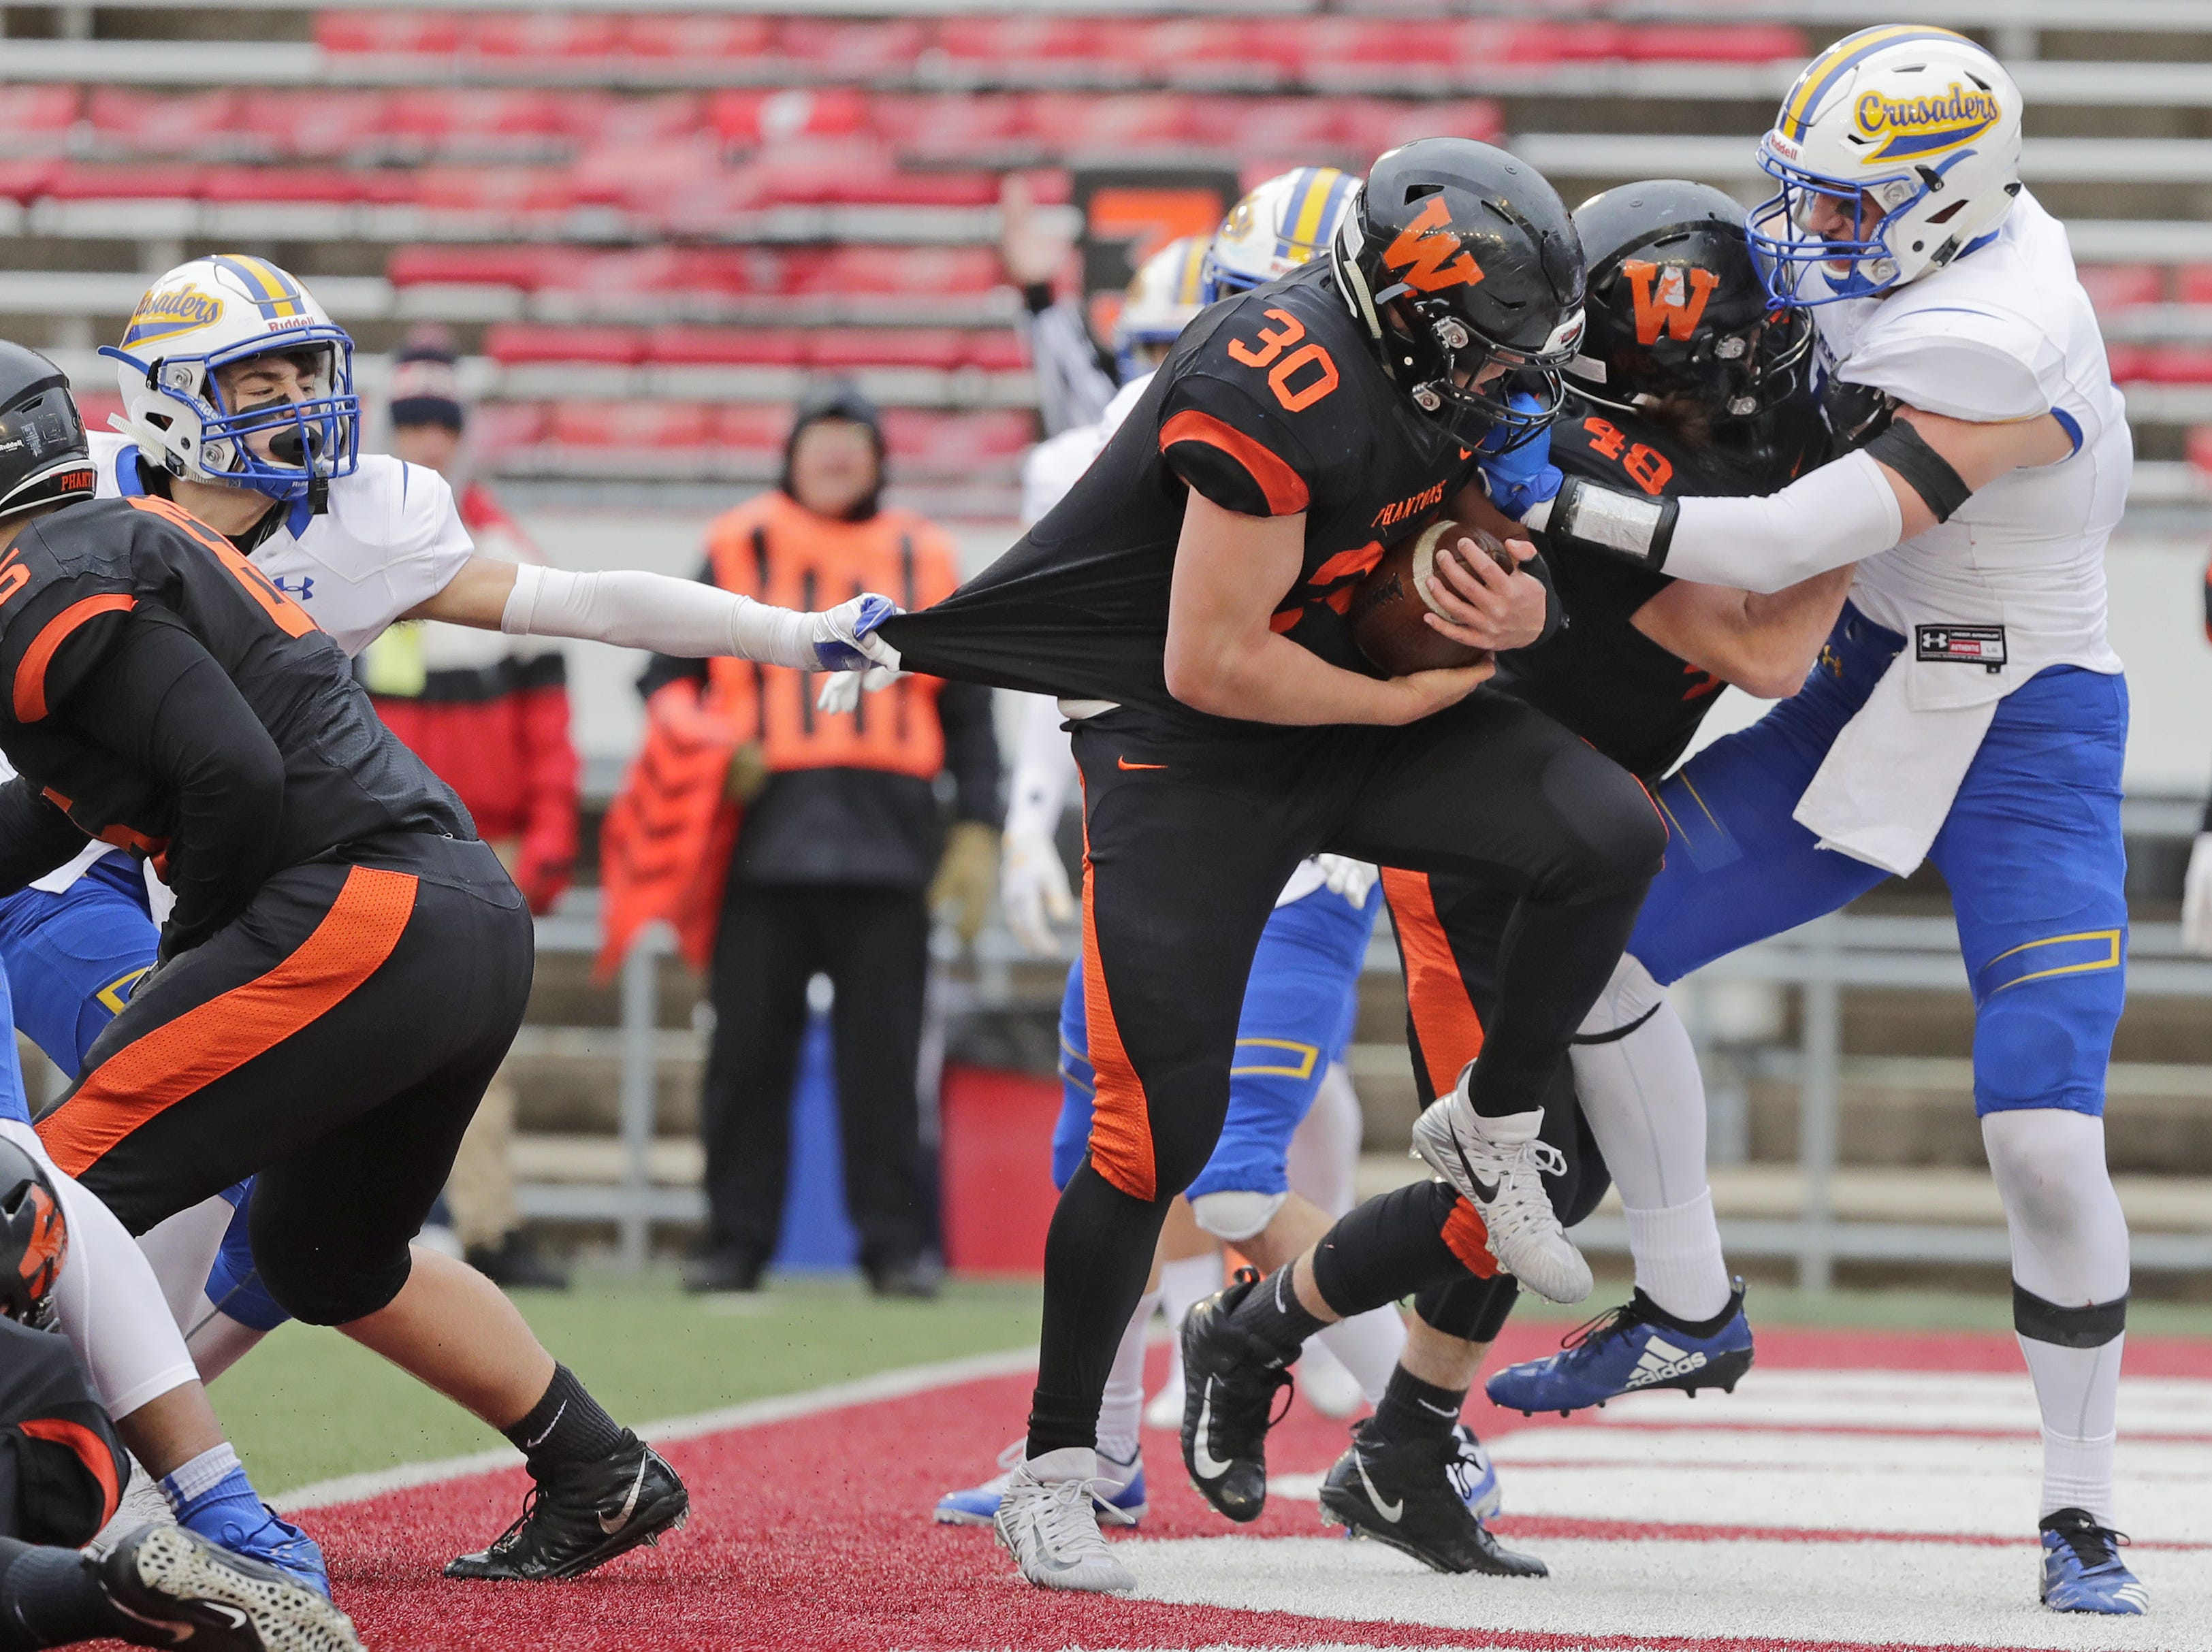 West De Pere's Cody Cavil (30) rushes for a touchdown against Catholic Memorial in the WIAA Division 3 championship game at Camp Randall Stadium on Friday, November 16, 2018 in Madison, Wis.